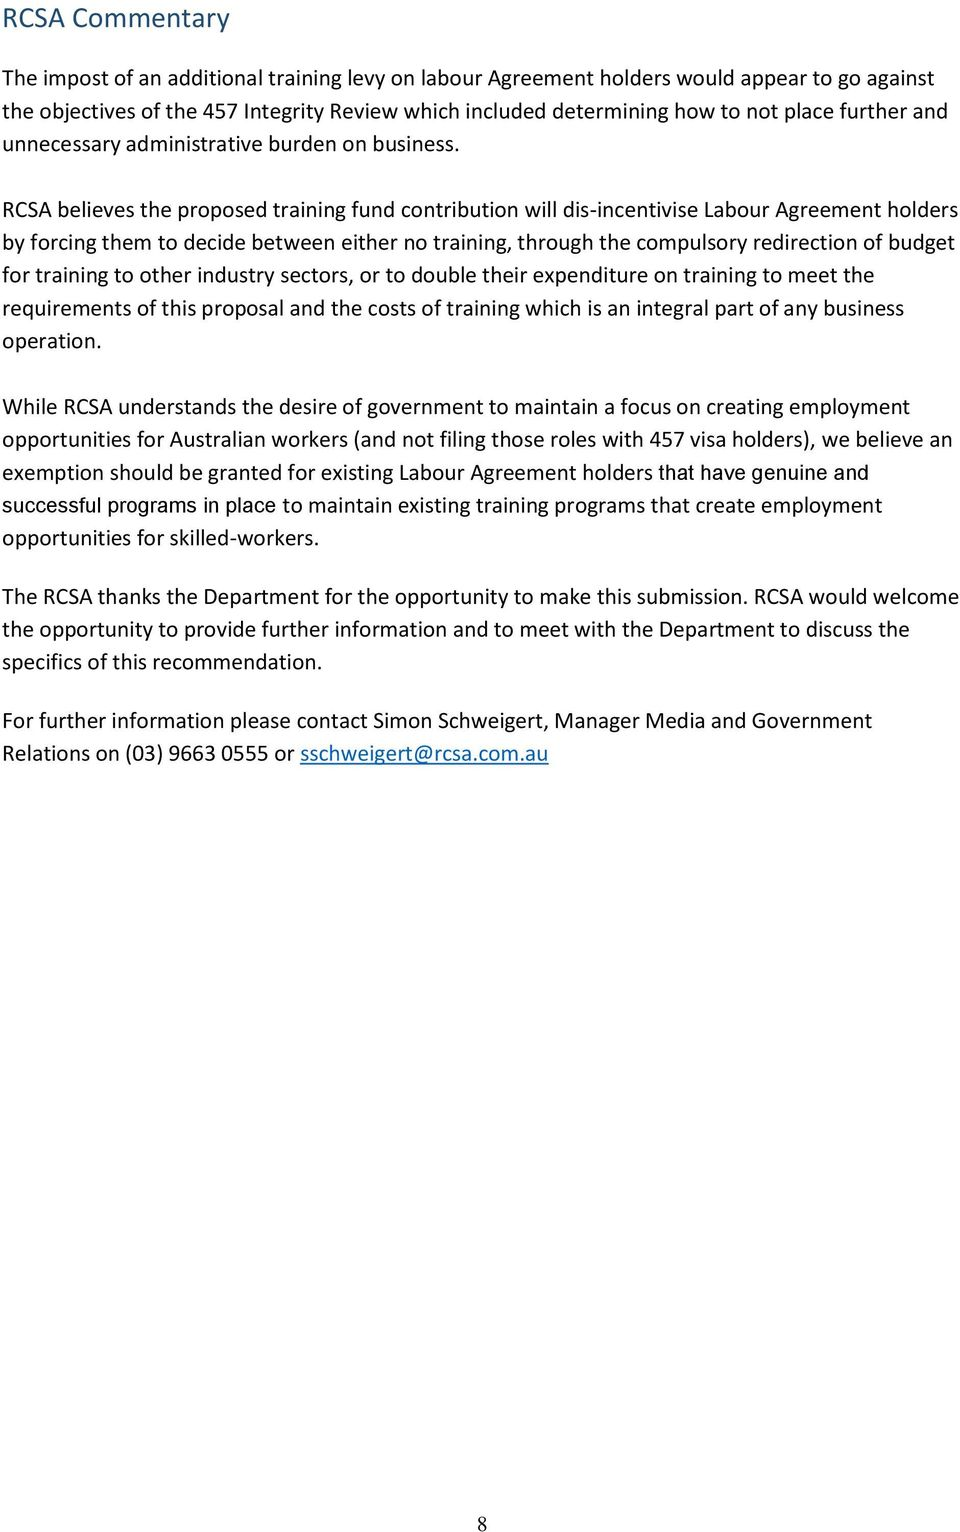 RCSA believes the proposed training fund contribution will dis-incentivise Labour Agreement holders by forcing them to decide between either no training, through the compulsory redirection of budget